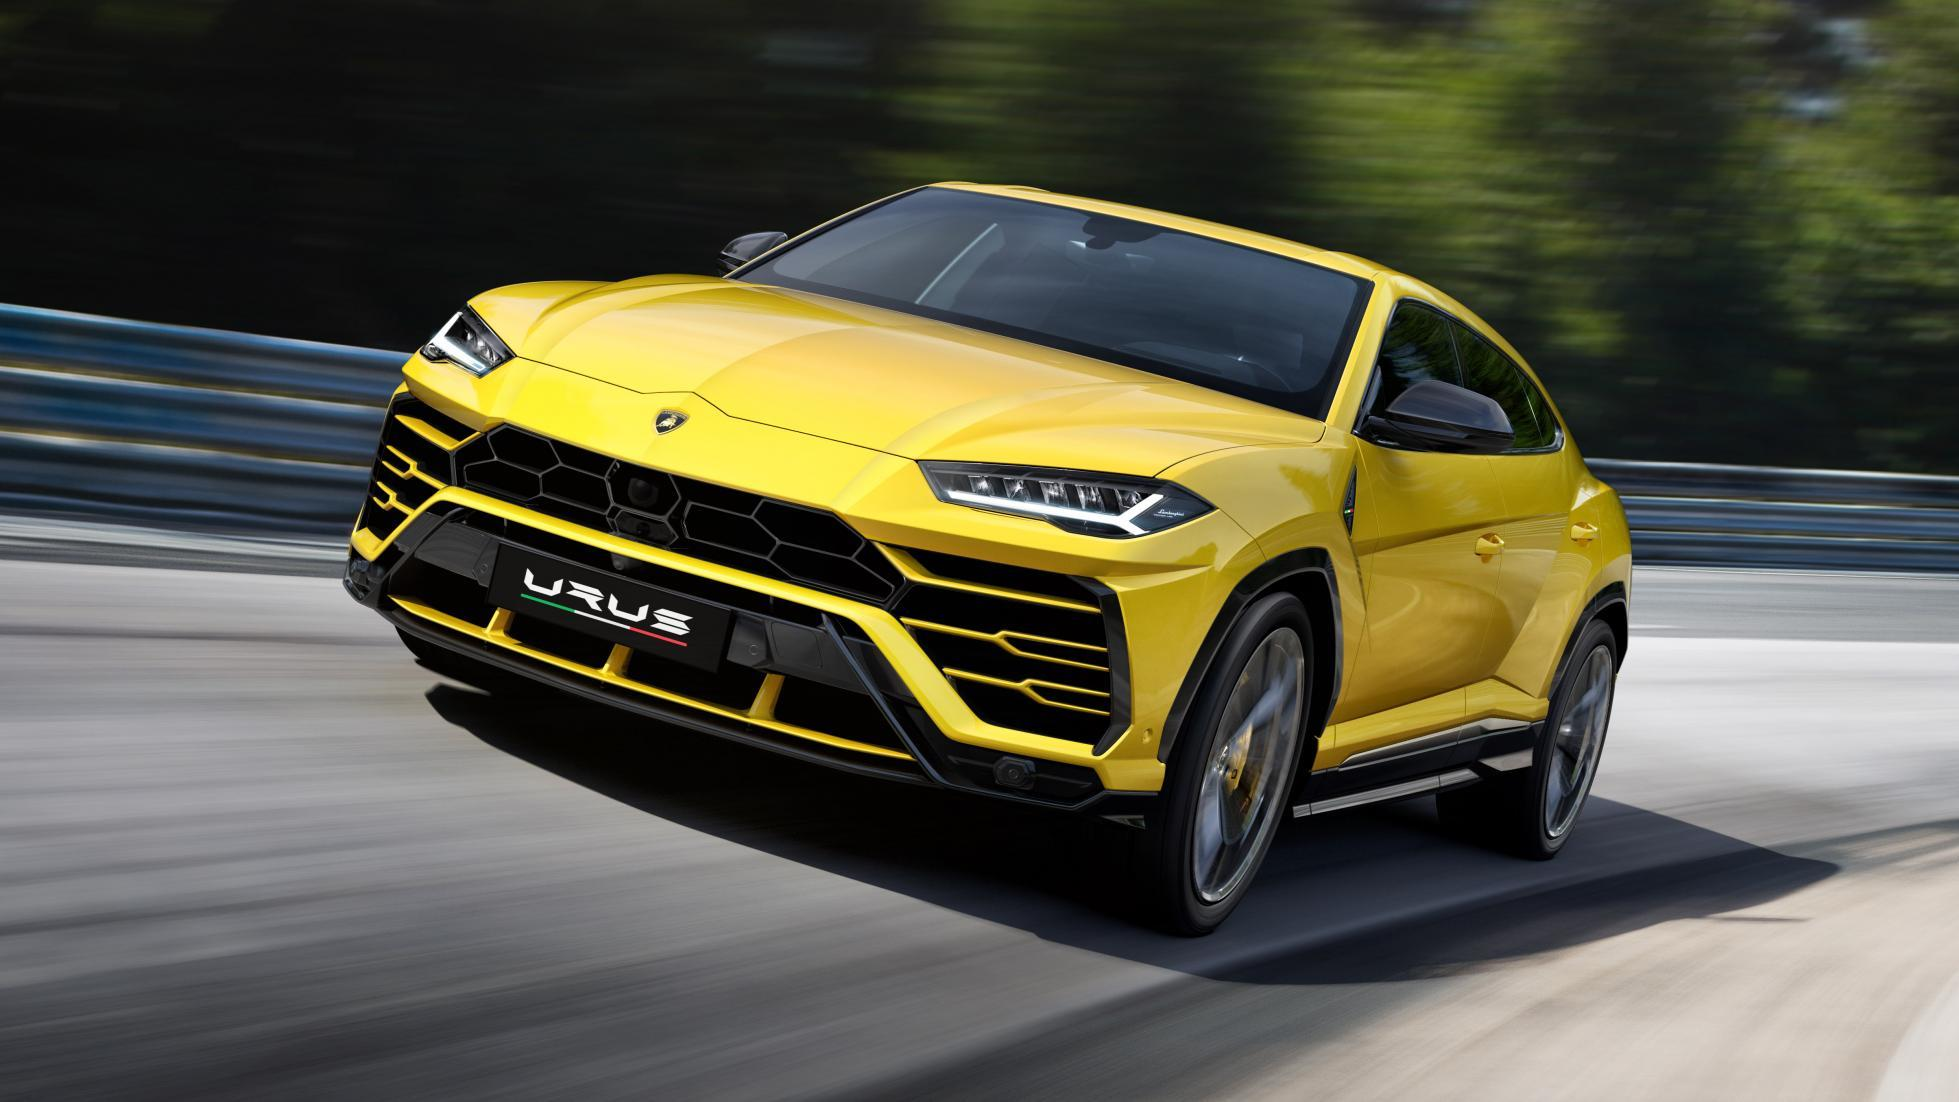 The 2019 Lamborghini Urus is here and it's a supercar in SUV's clothing